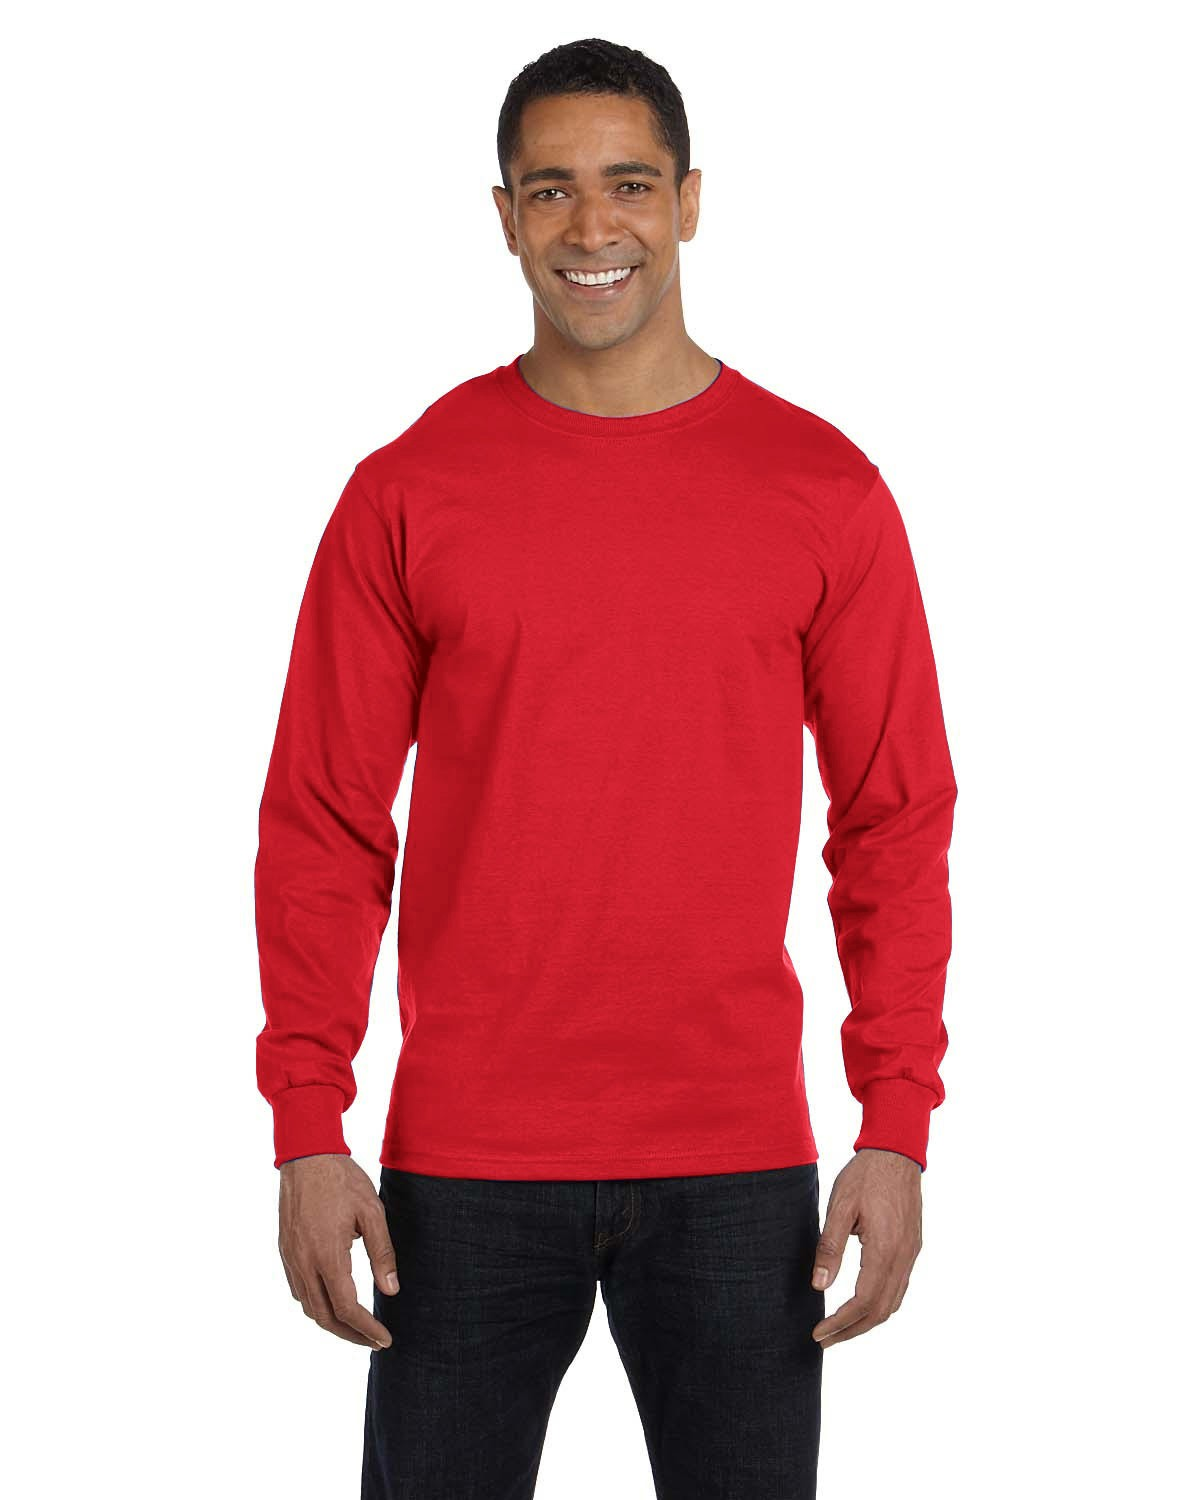 5286 Hanes Athletic Red